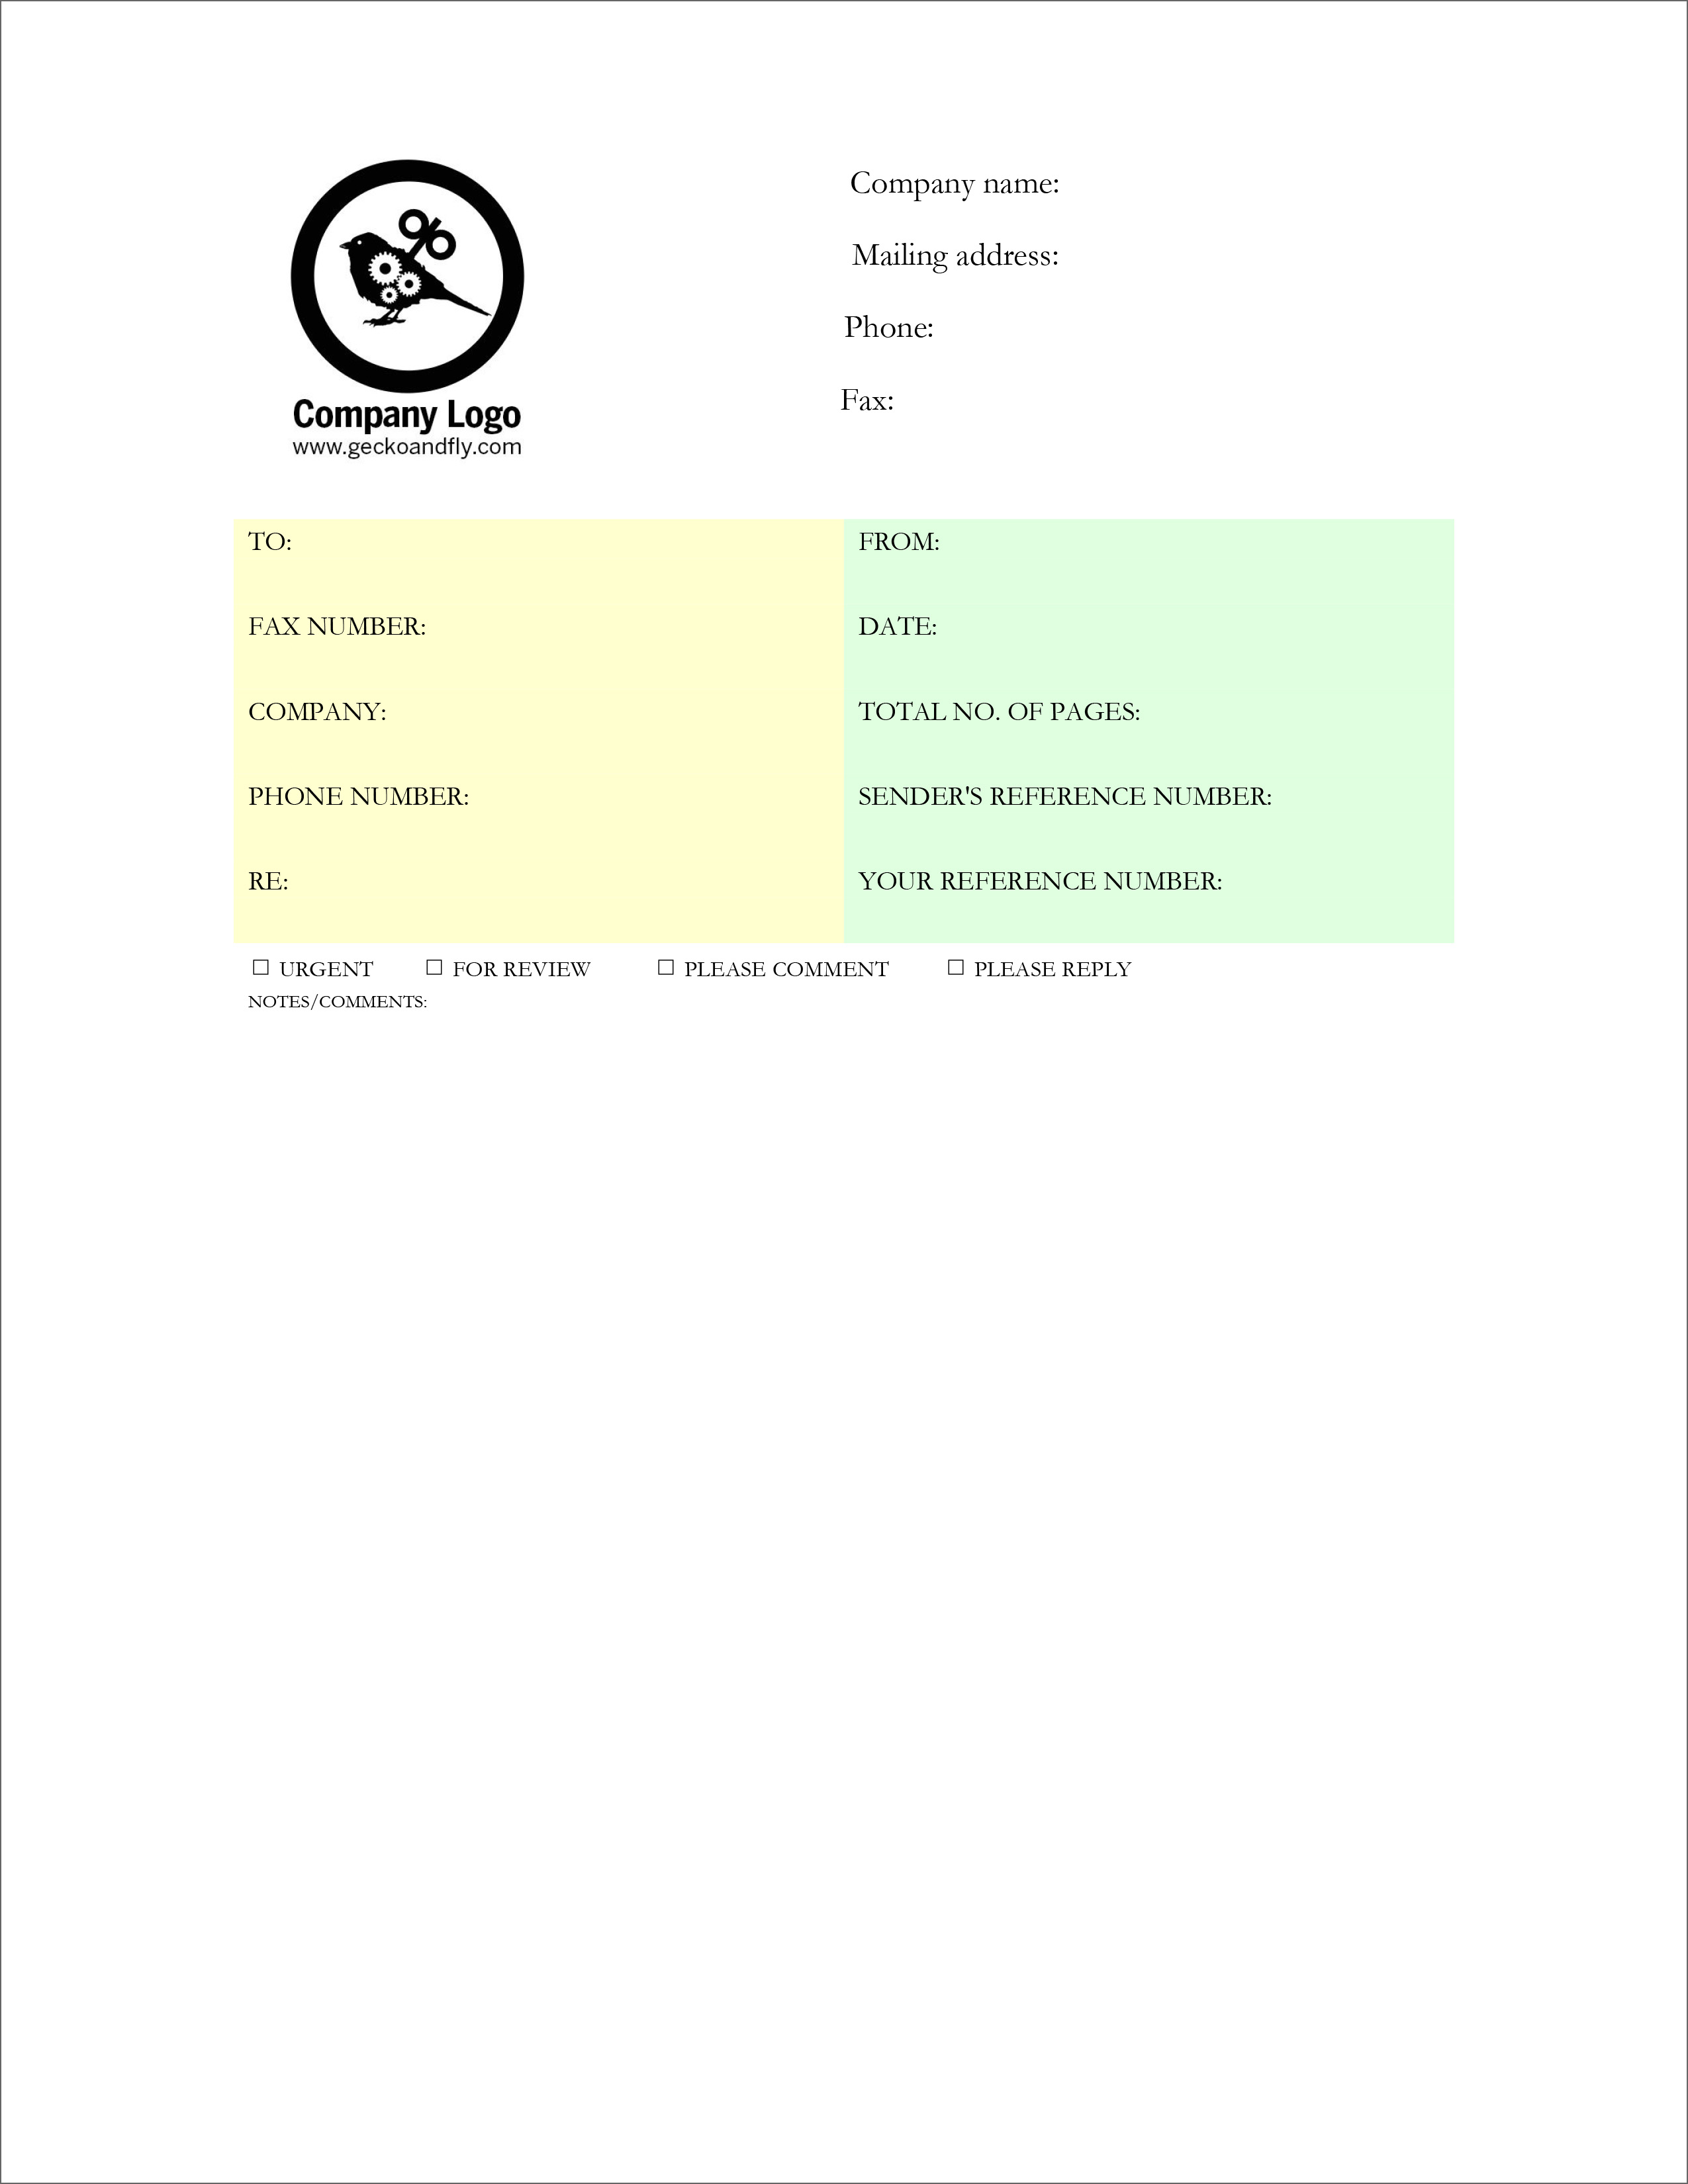 fax-cover-template-09 Google Fax Cover Letter Template on sheet professional design, google docs, microsoft word,